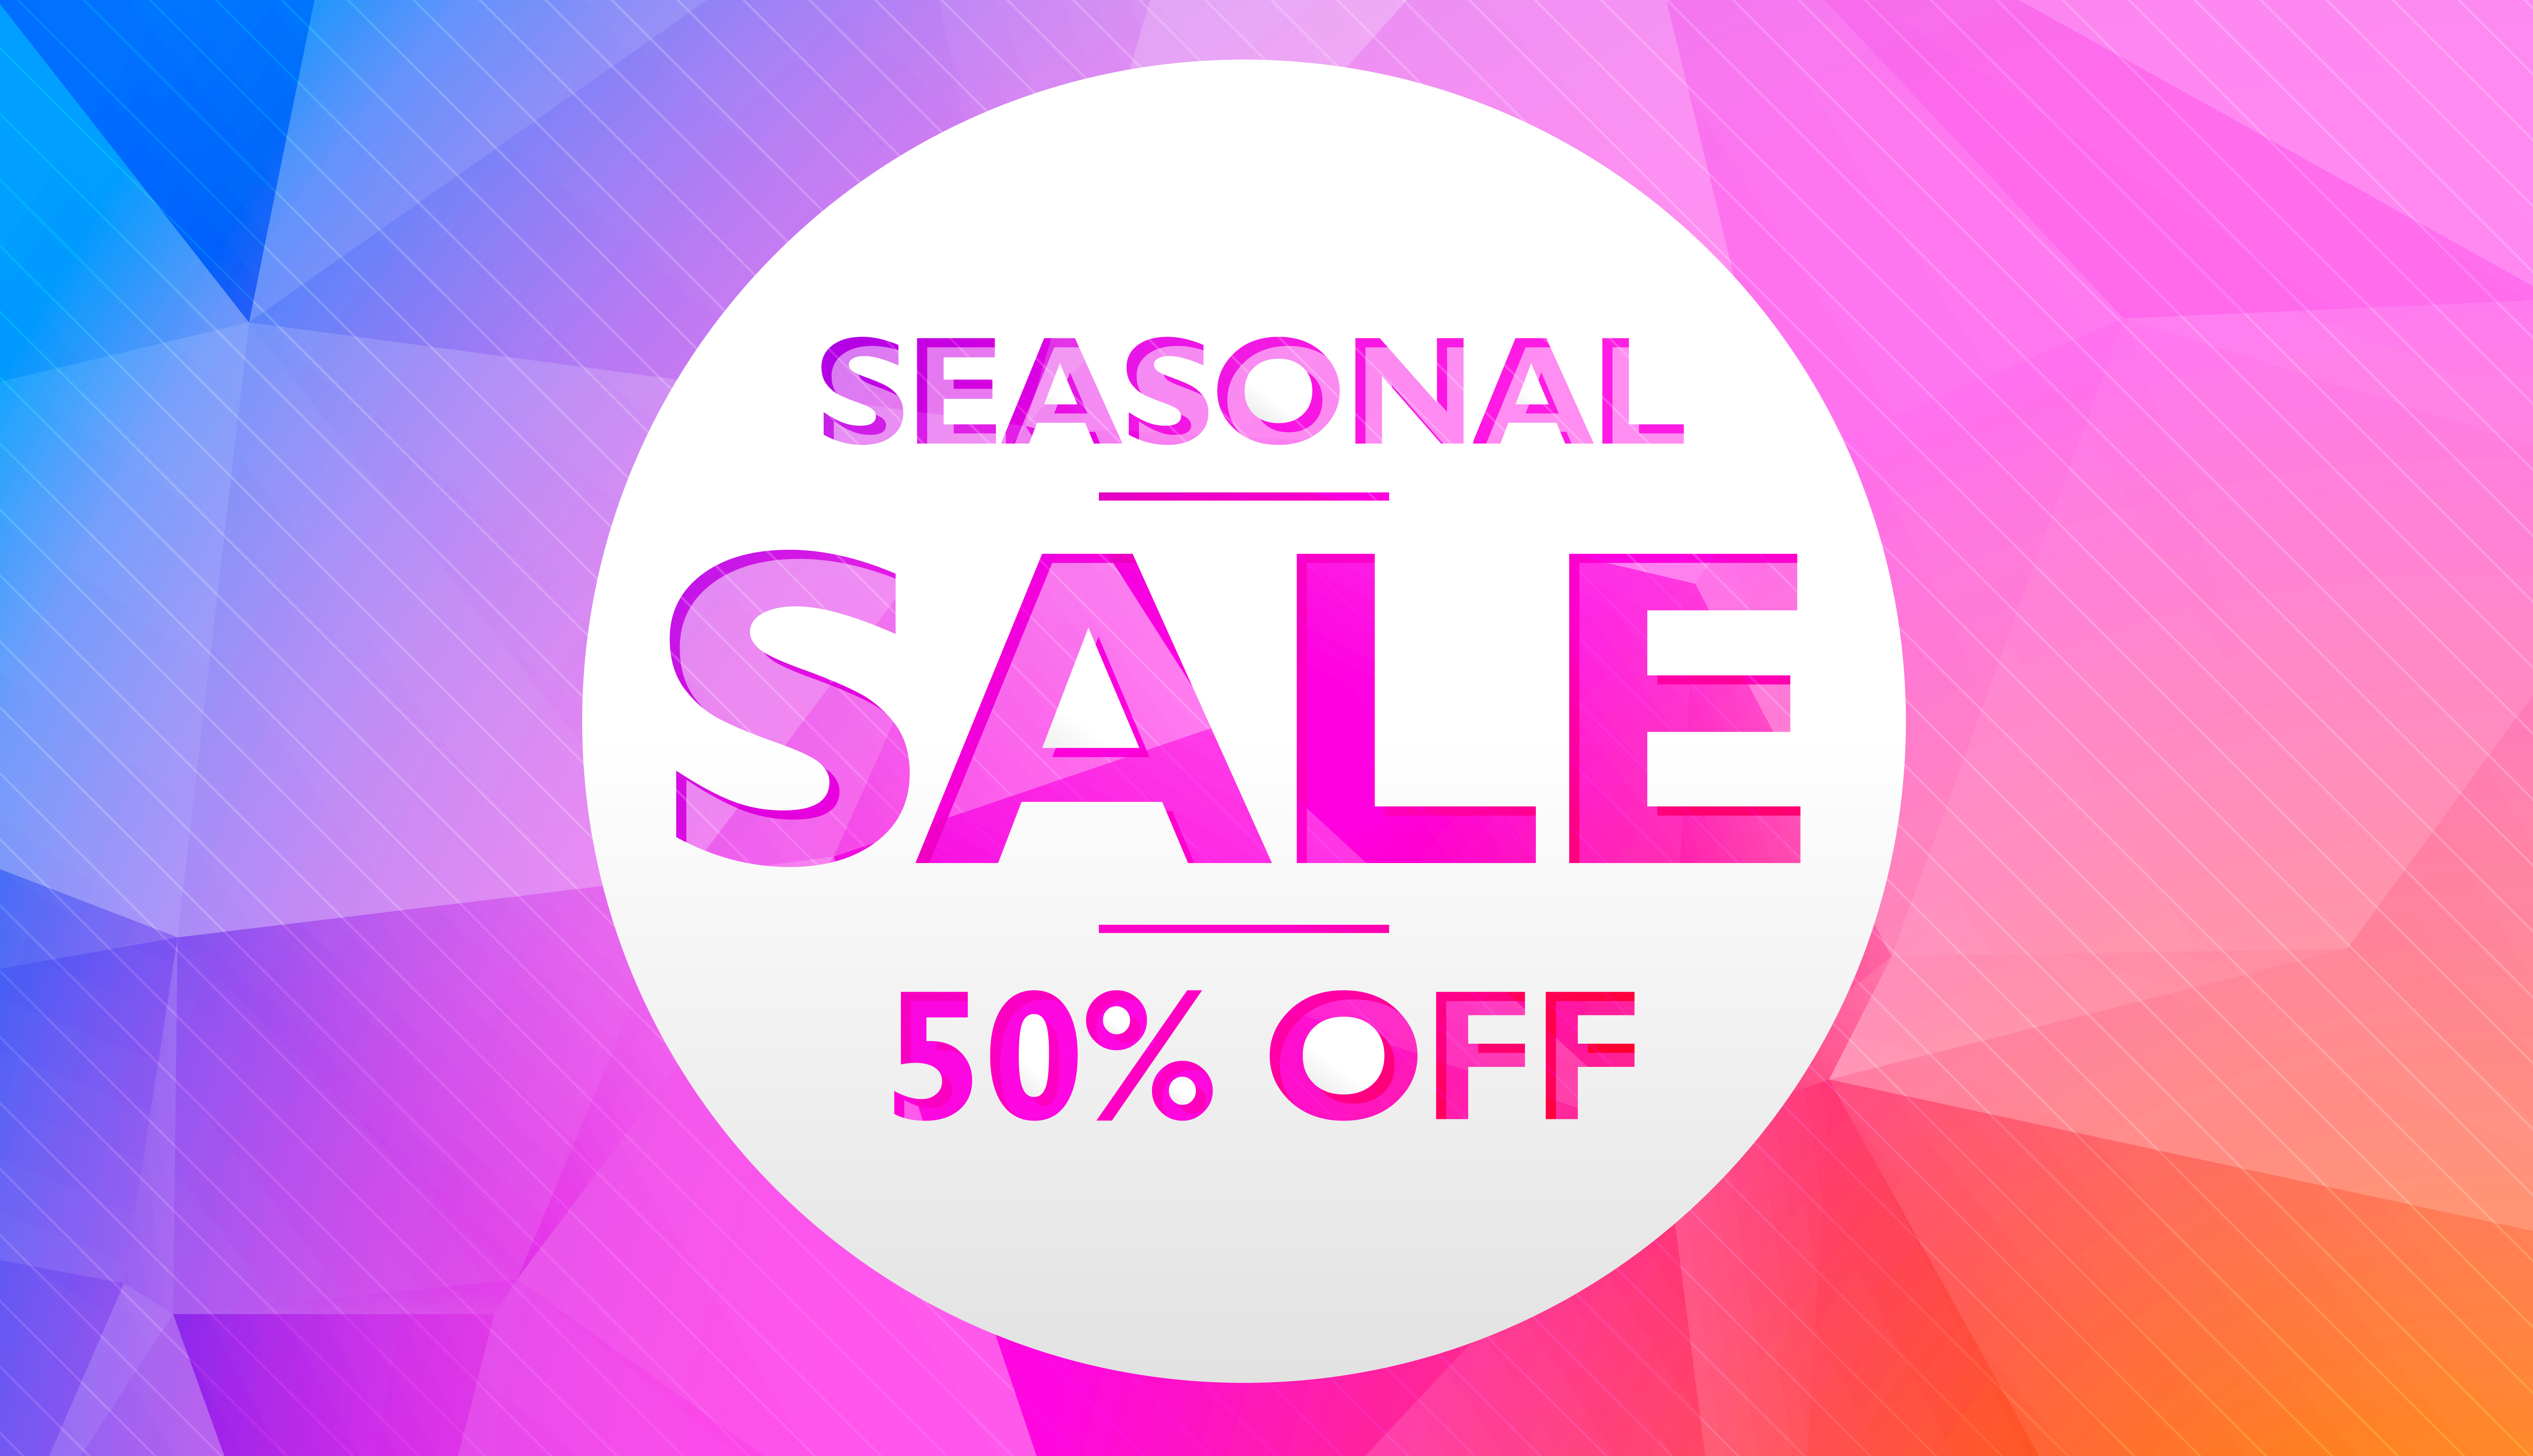 seasonal sale offer and discount banner poster template